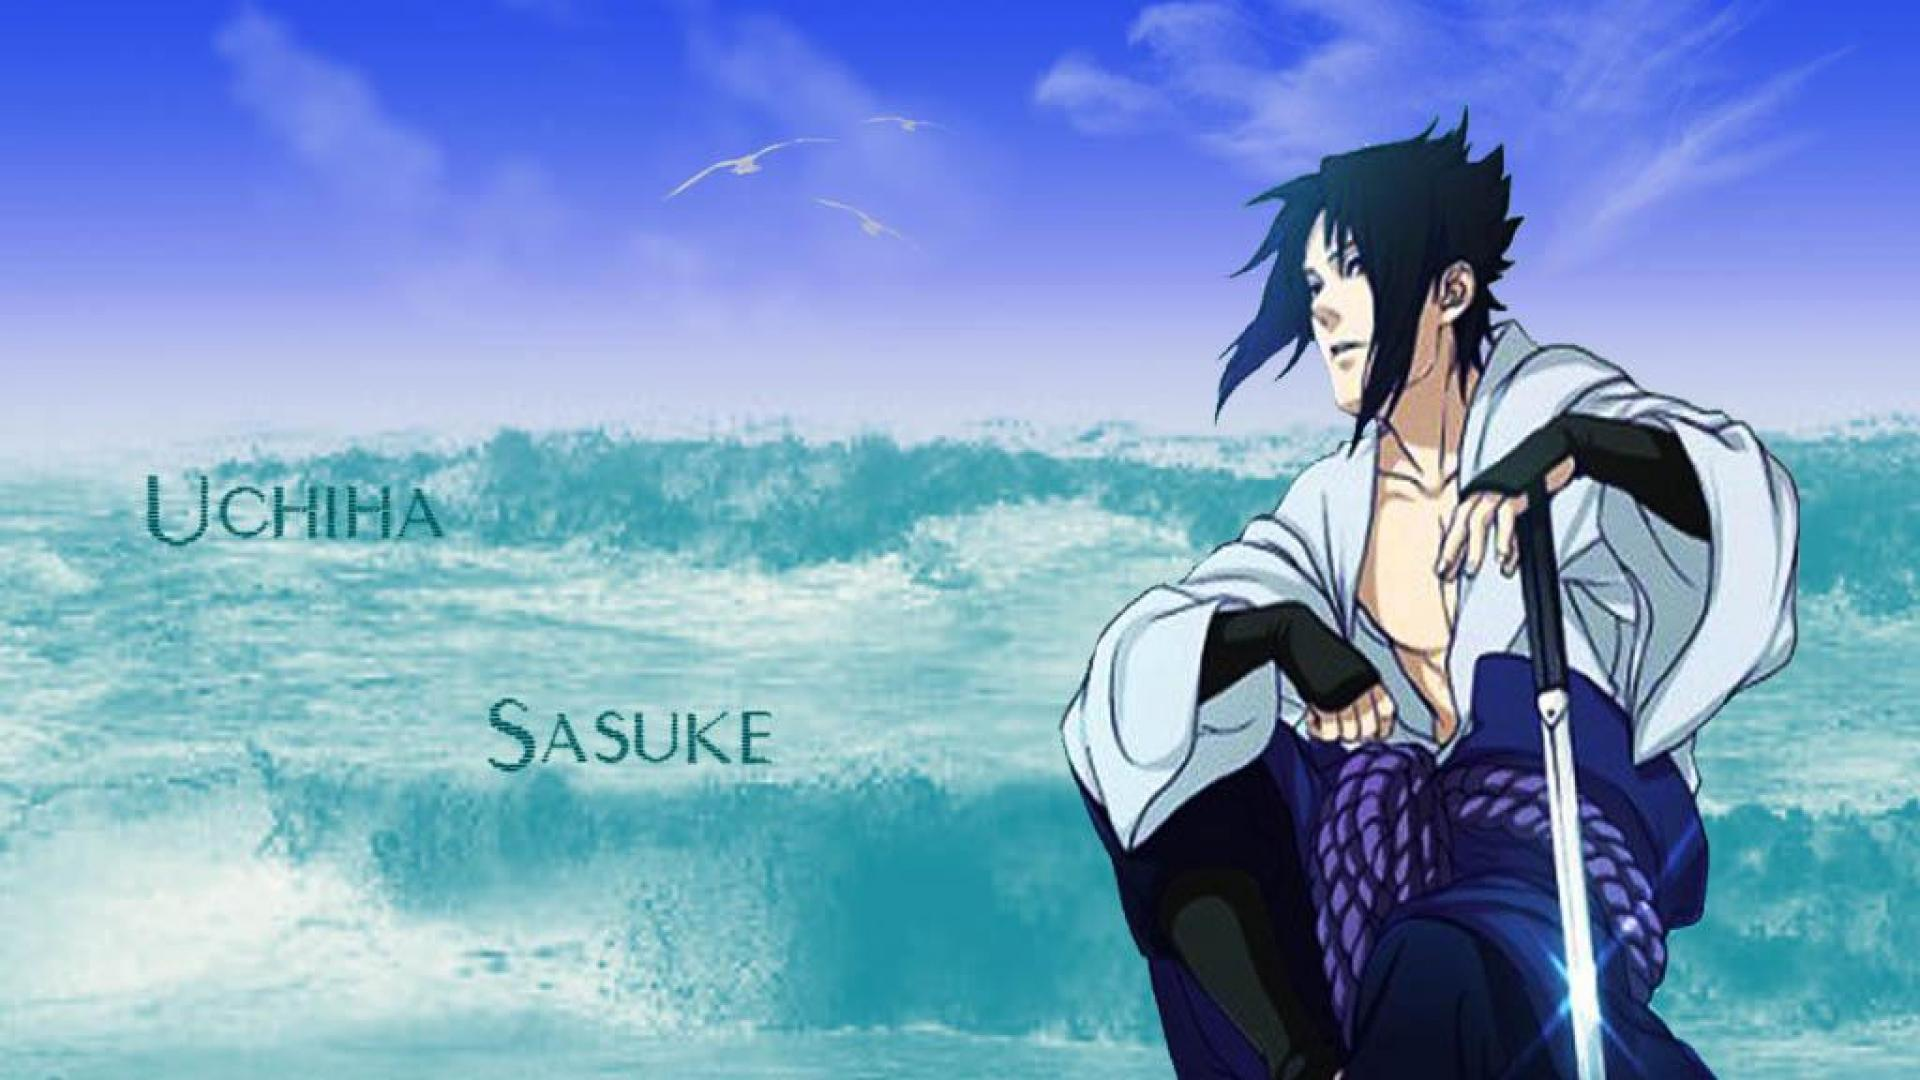 Best Sasuke Desktop Wallpaper